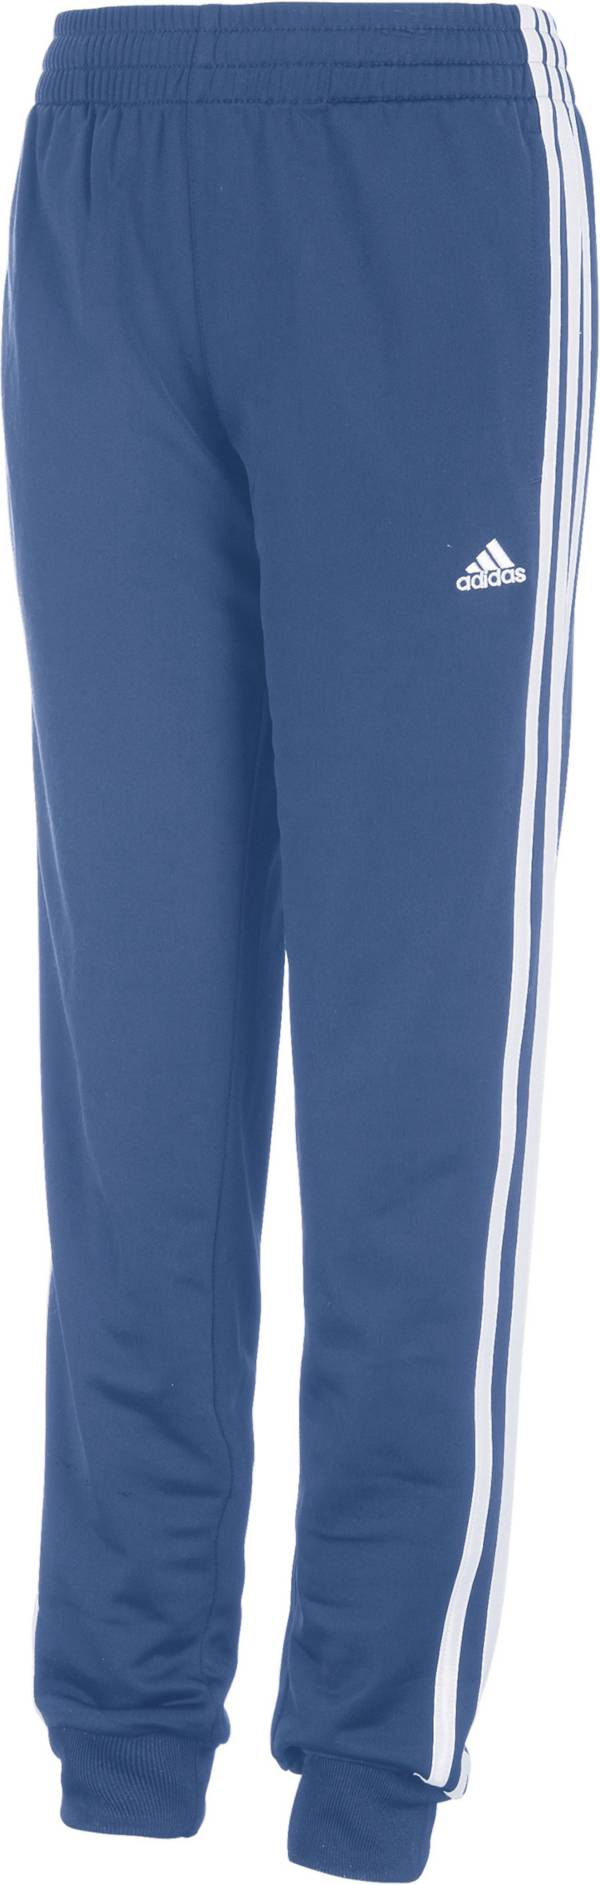 adidas Boys' Tricot Jogger Pants product image